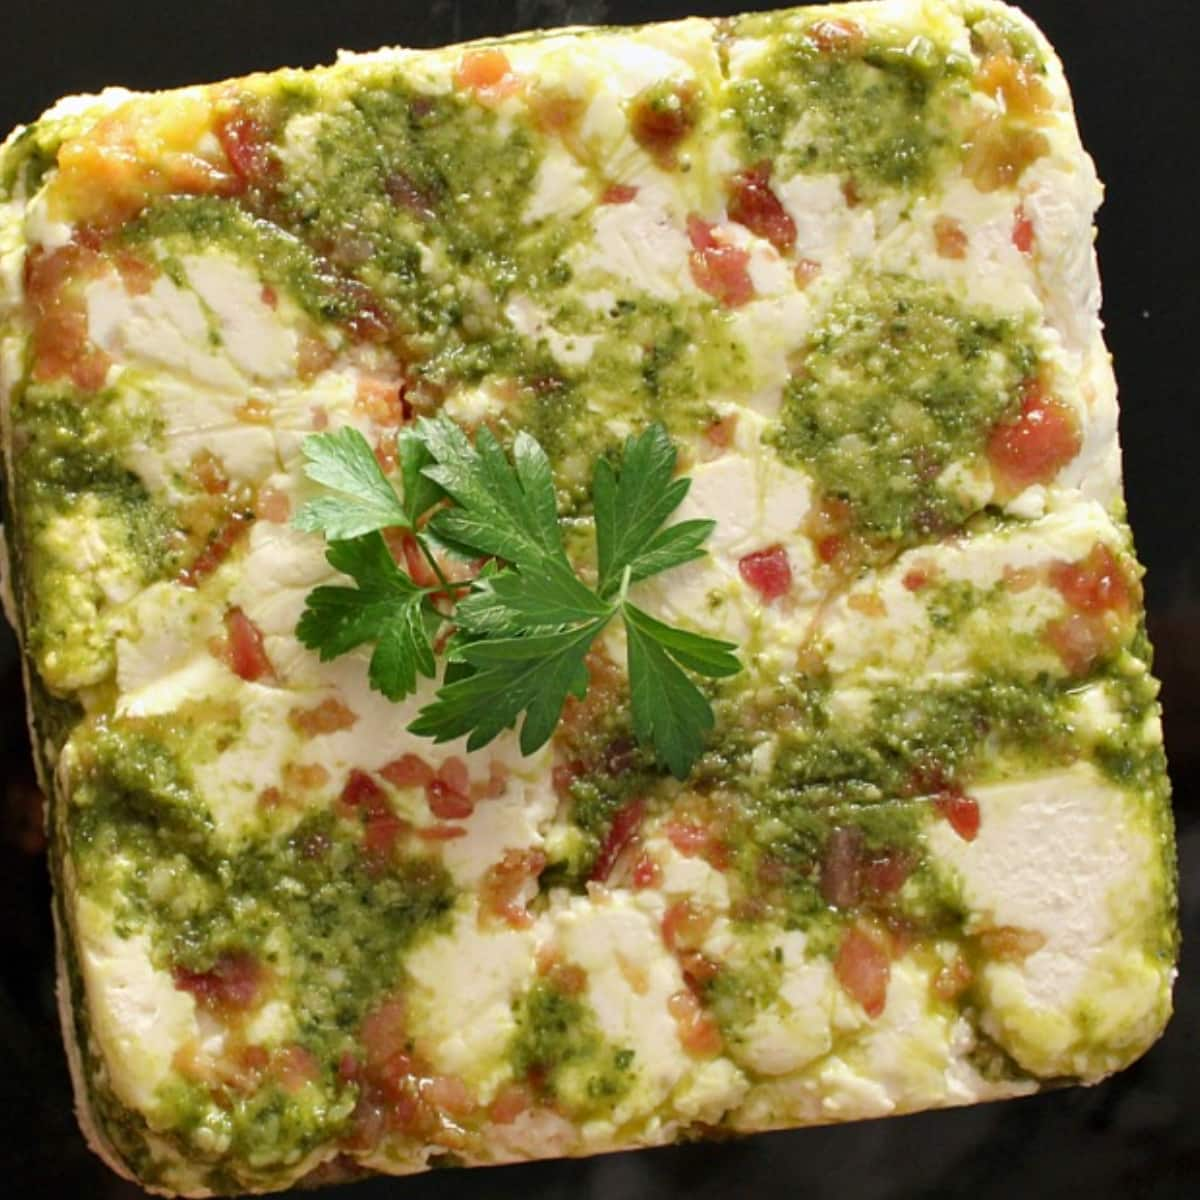 Sqaure of cheese and pesto spread